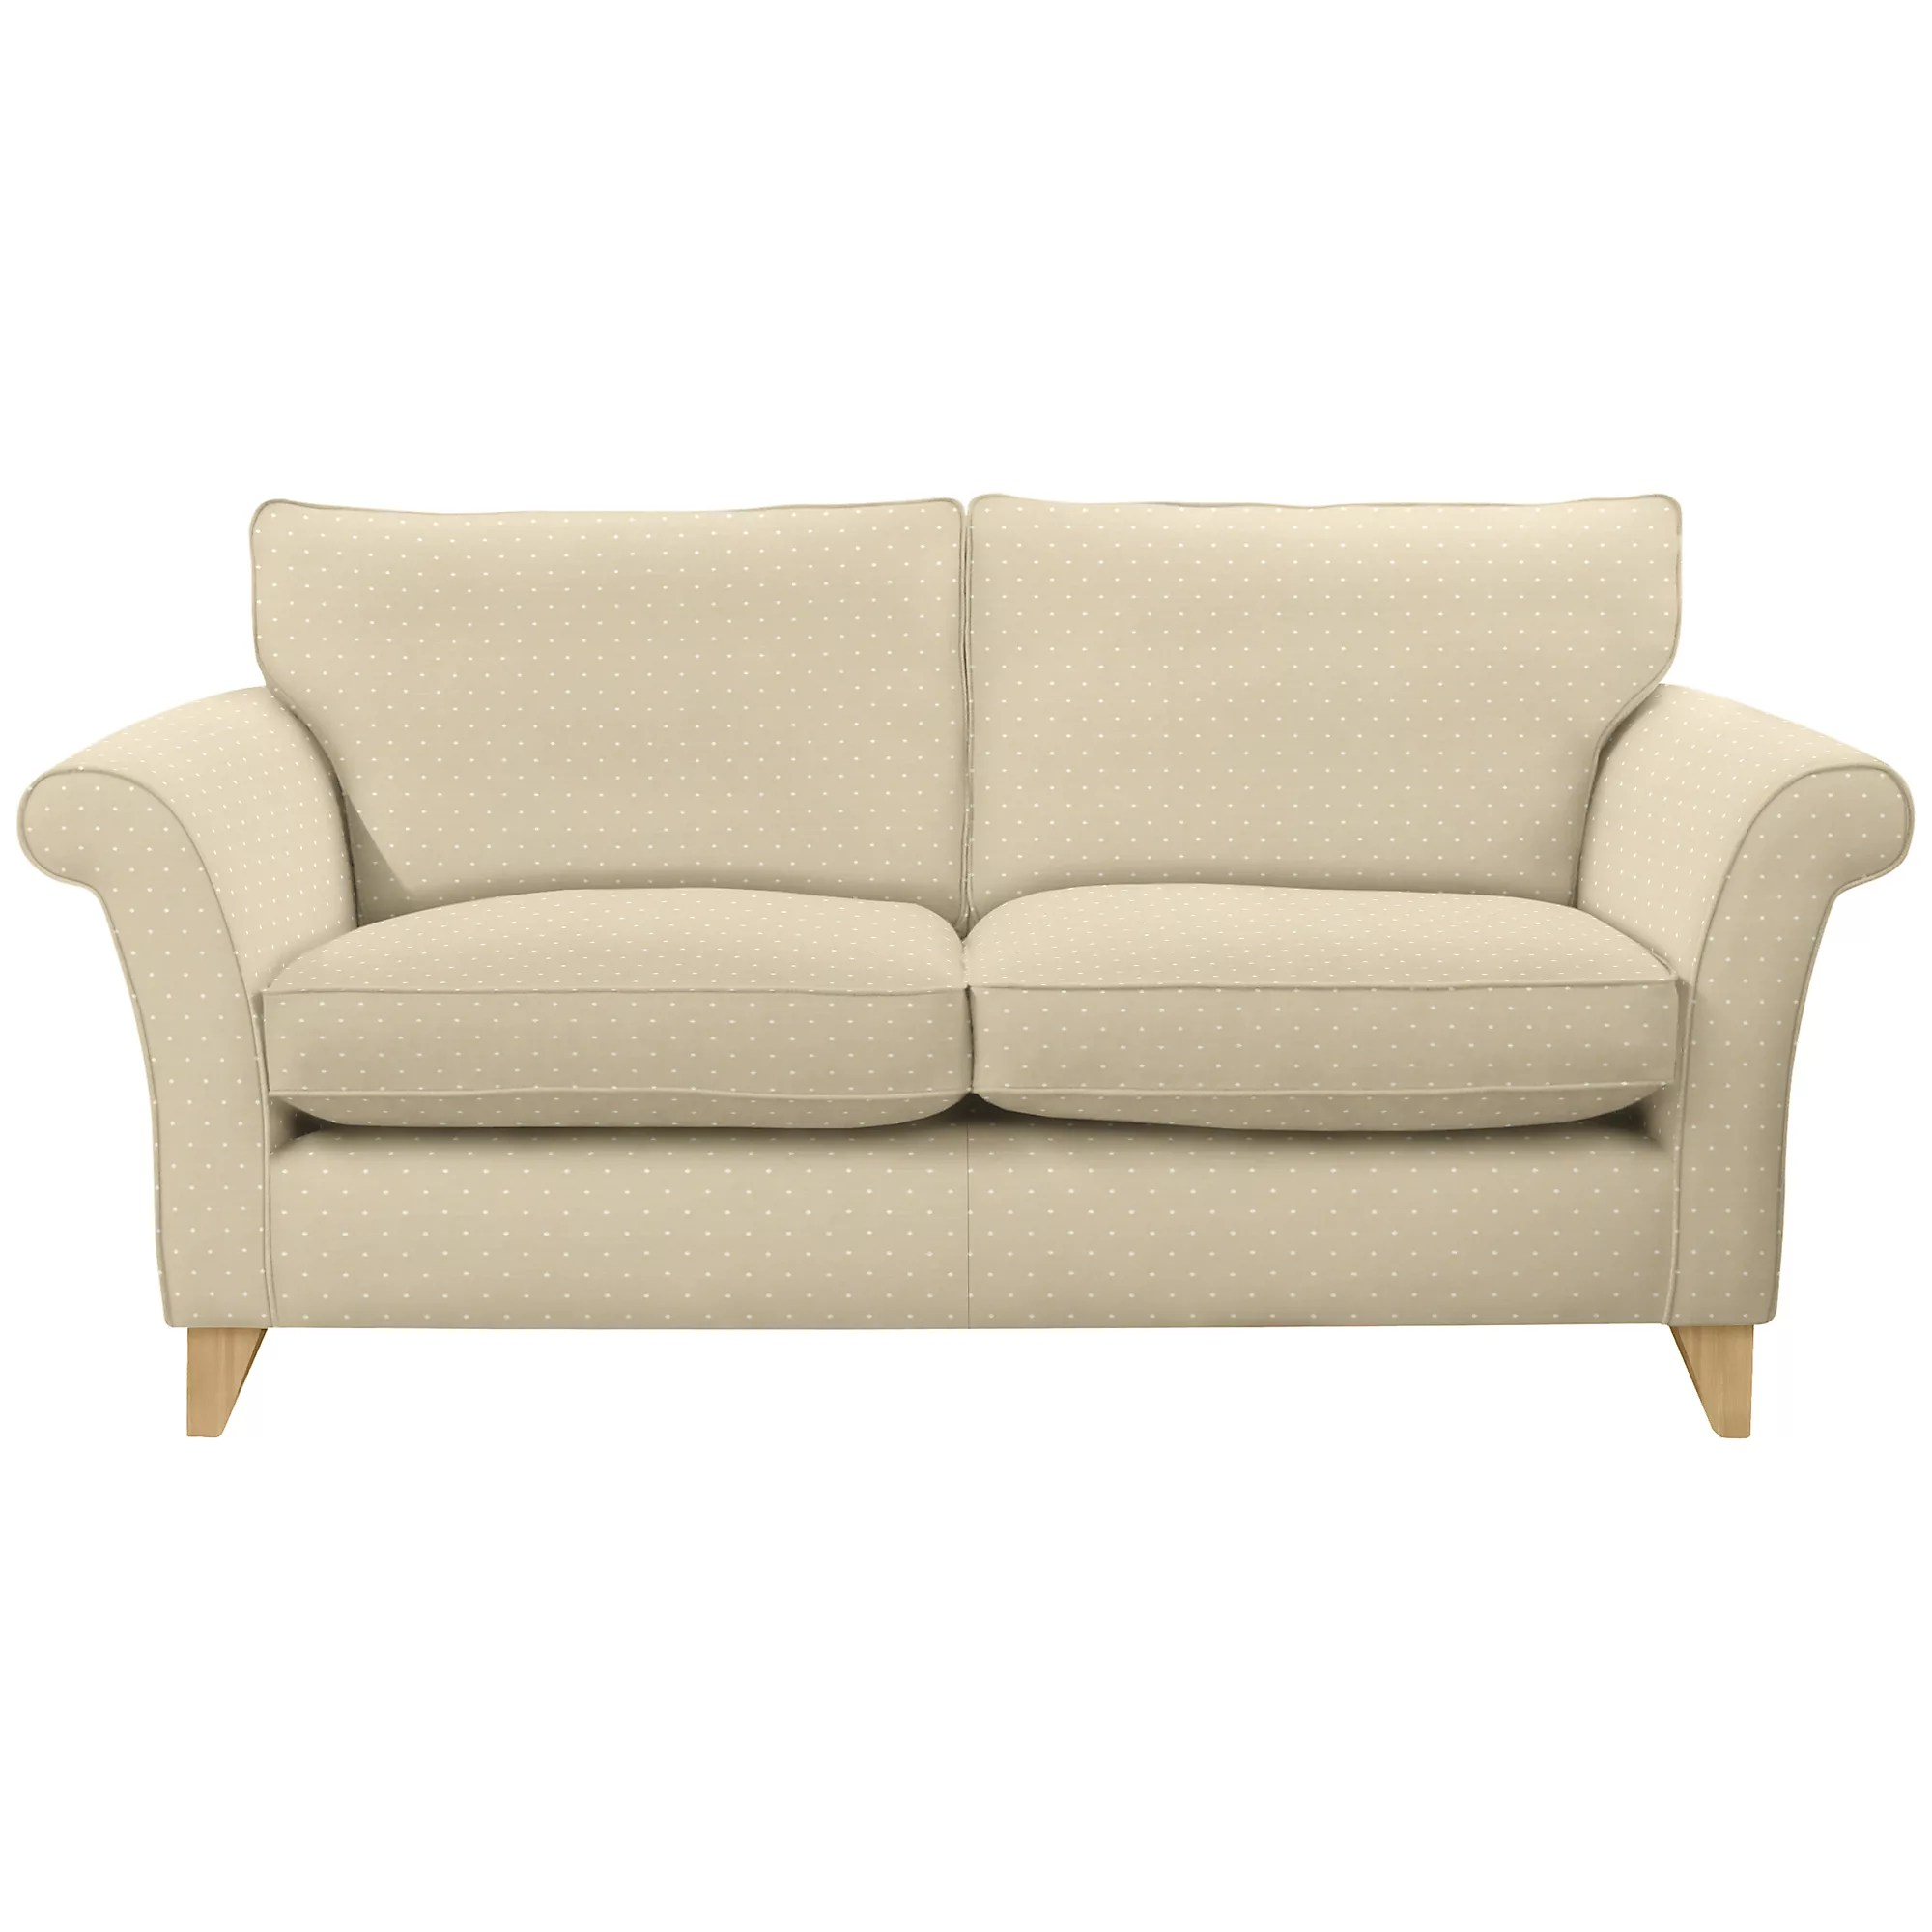 Big Sofa Corin Buy Cheap John Lewis Sofa Compare Sofas Prices For Best